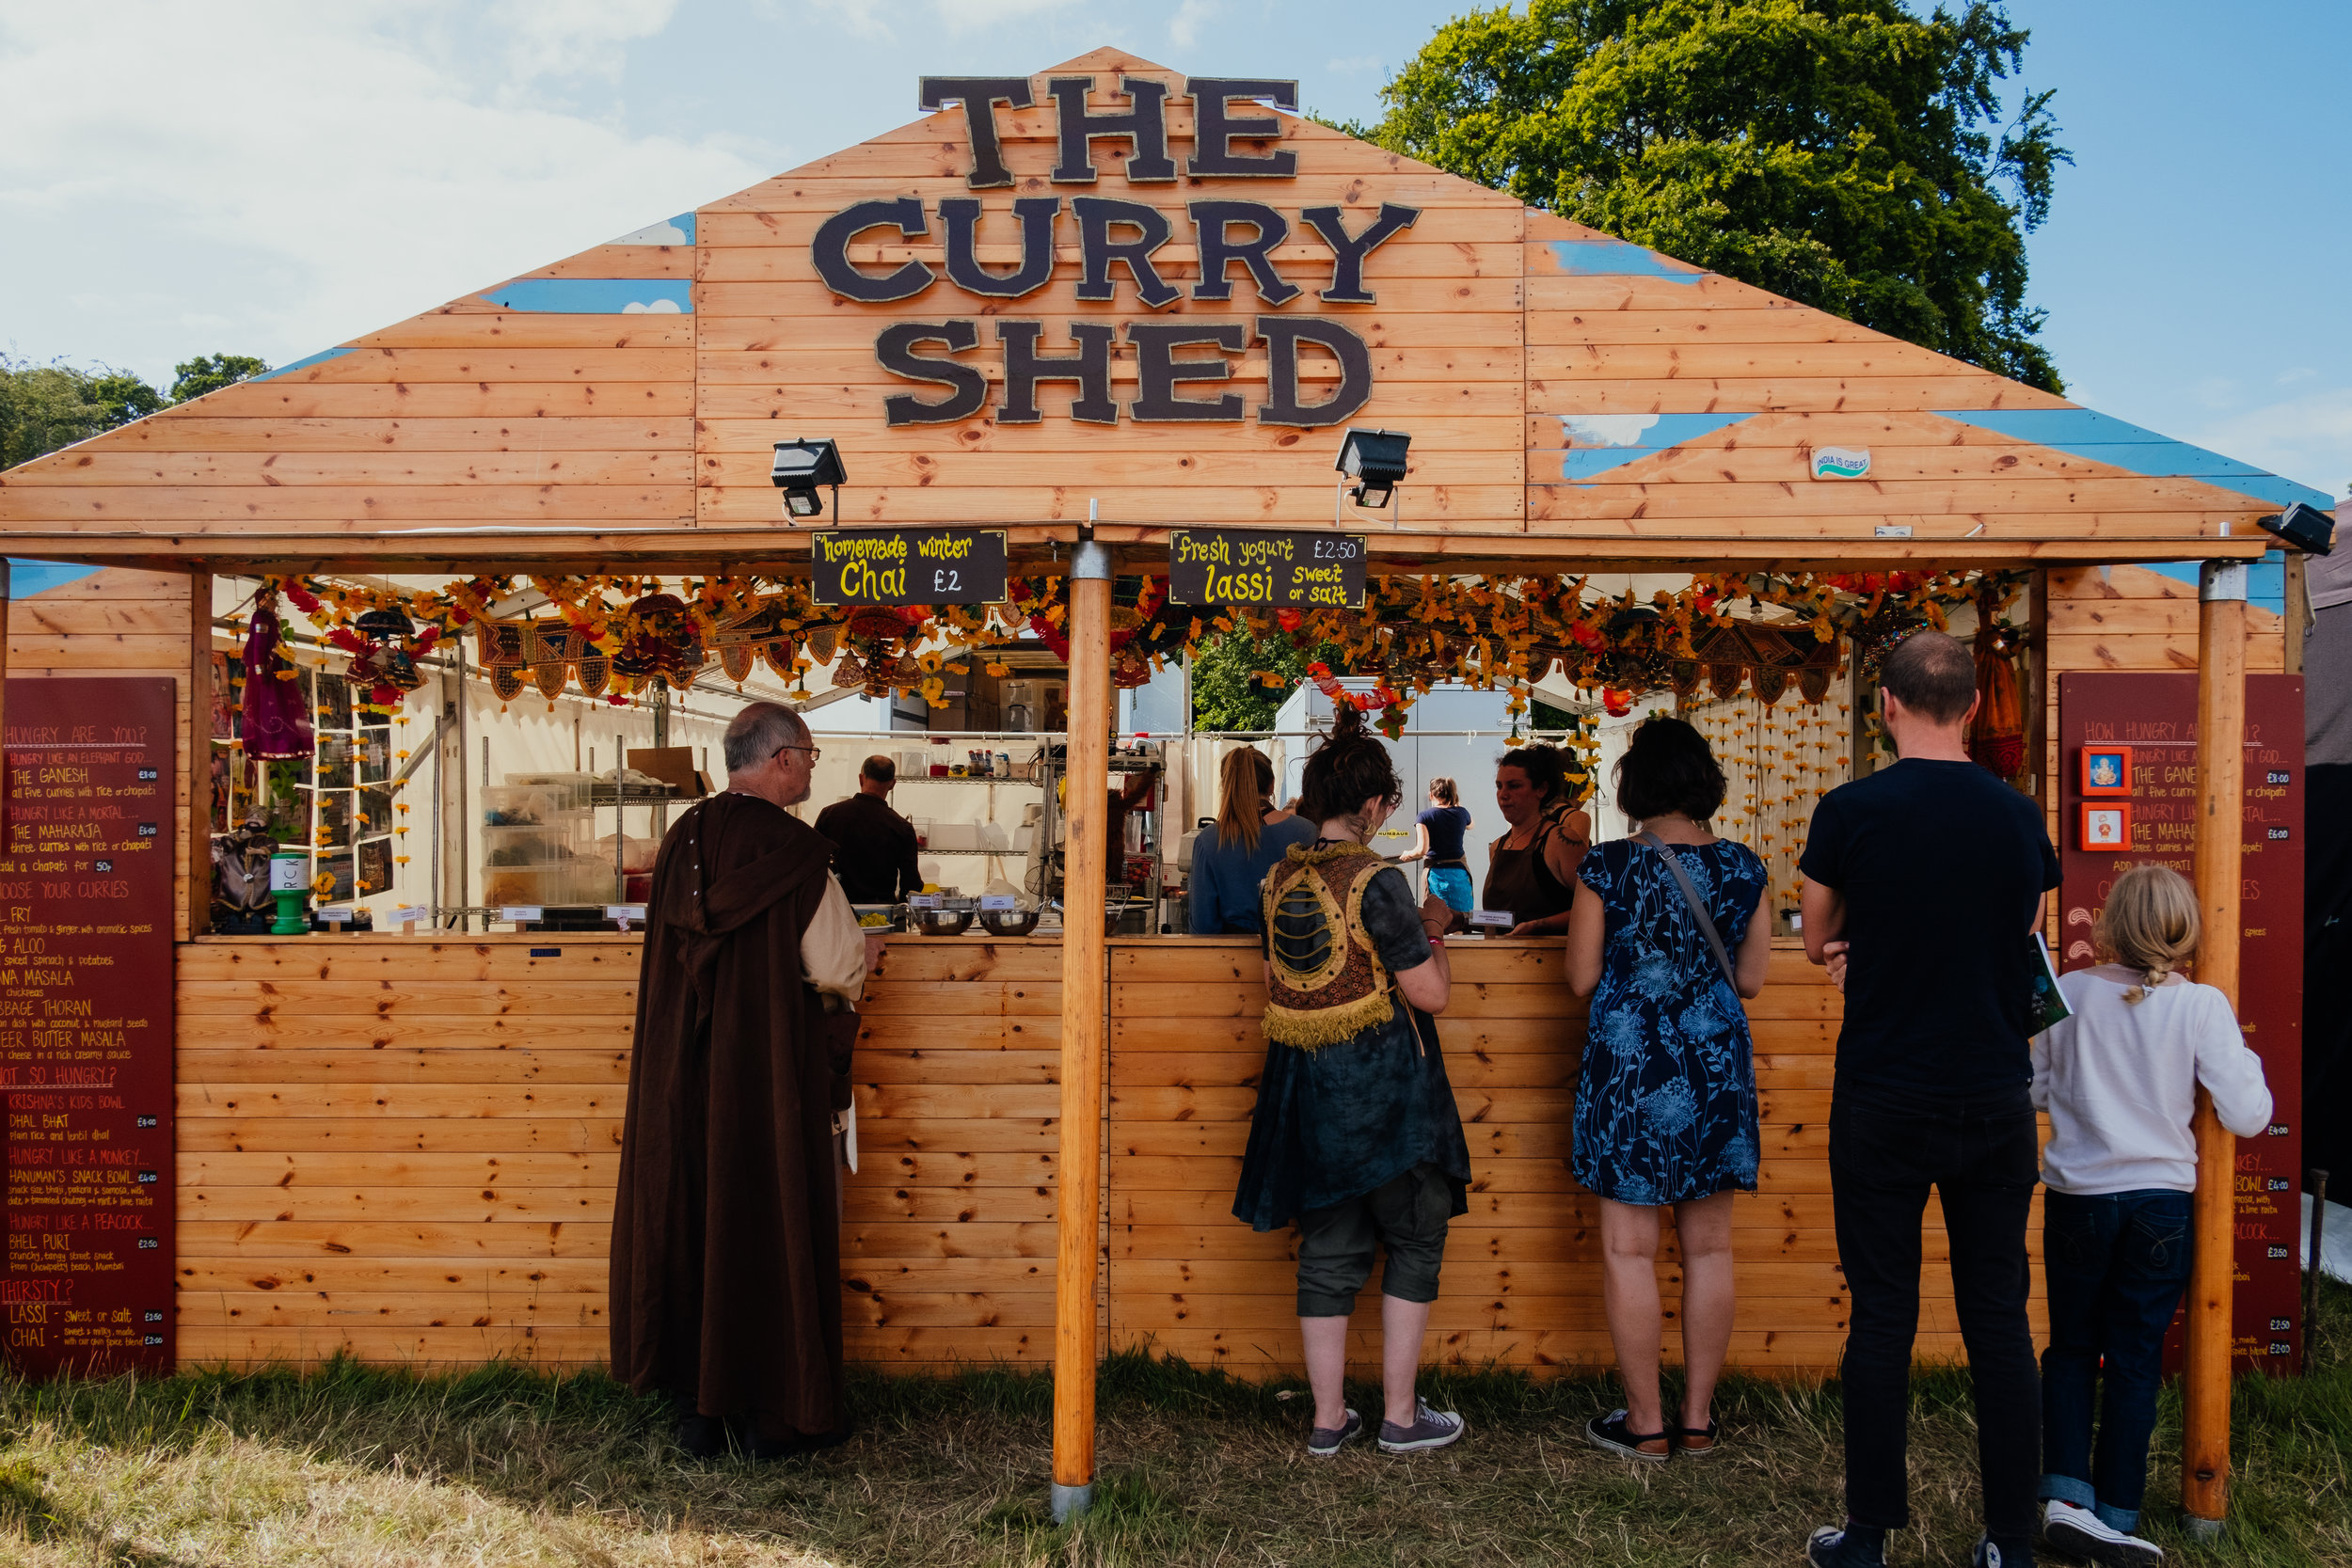 Larmer Tree Festival 2019 The Curry Shed